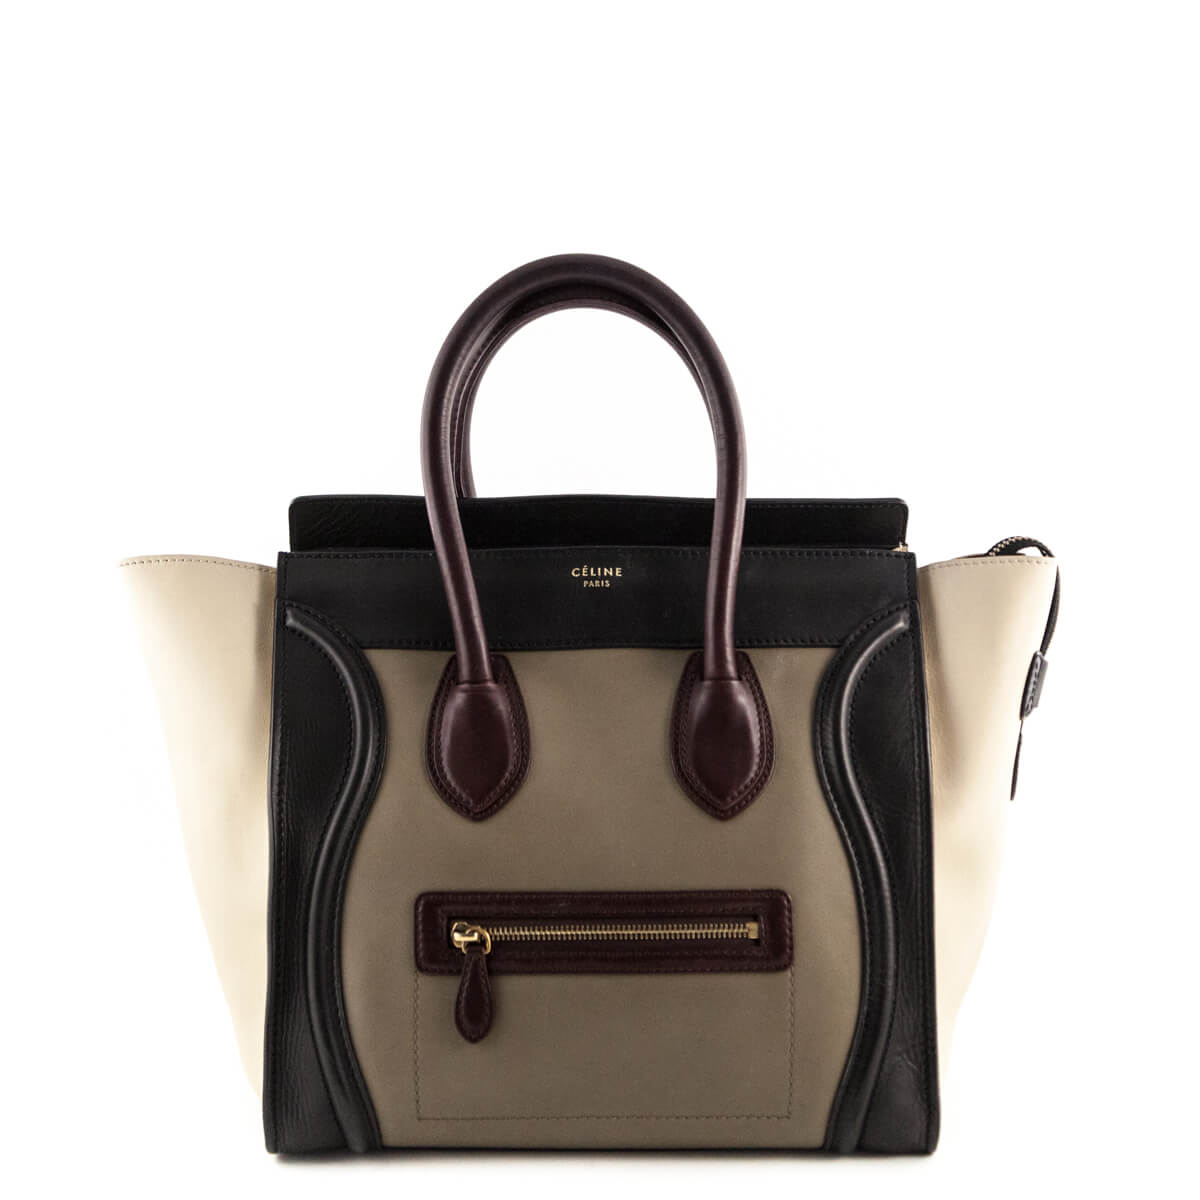 0fff8d9b83c9 Celine Olive Tricolor Calfskin Mini Luggage - LOVE that BAG - Preowned  Authentic Designer Handbags ...